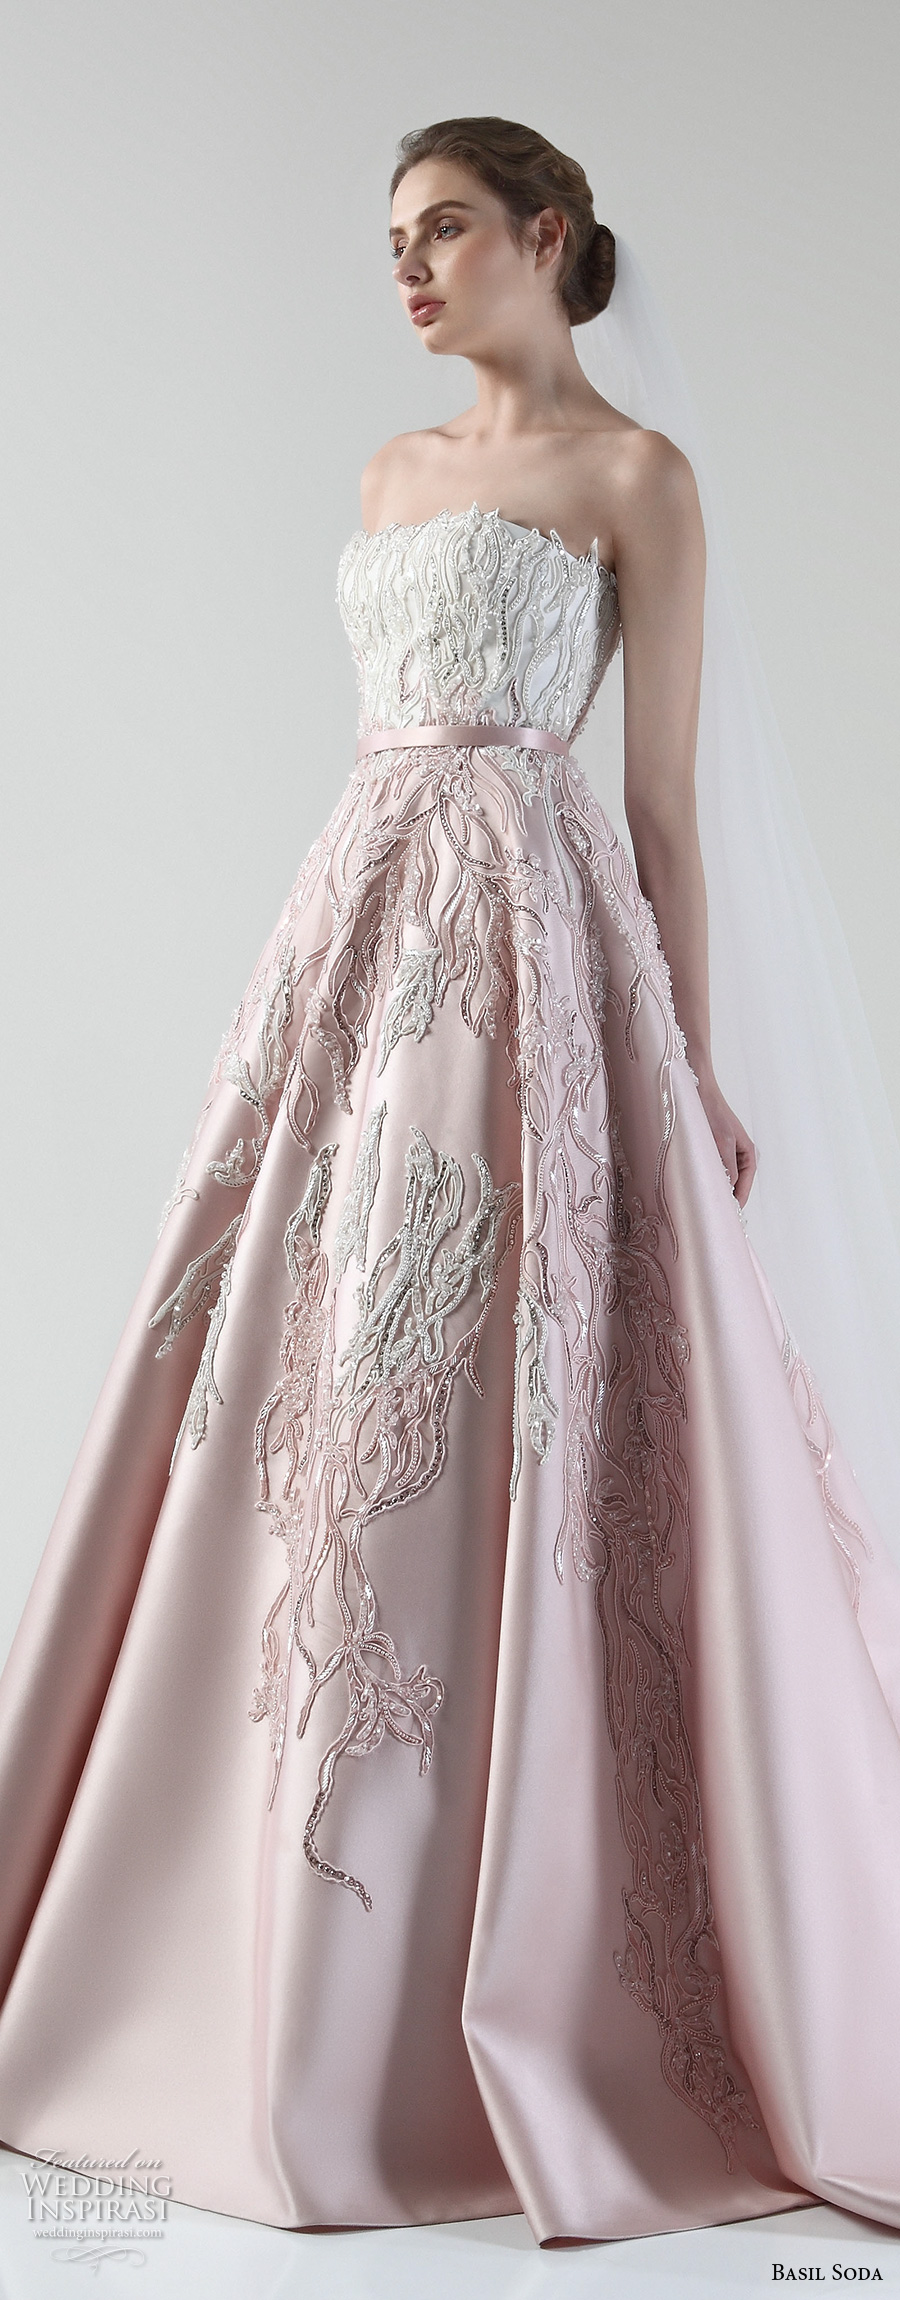 basil soda 2017 bridal strapless straight across heavily embellished bodice romantic princess pink a line wedding dress chapel train (11) zv